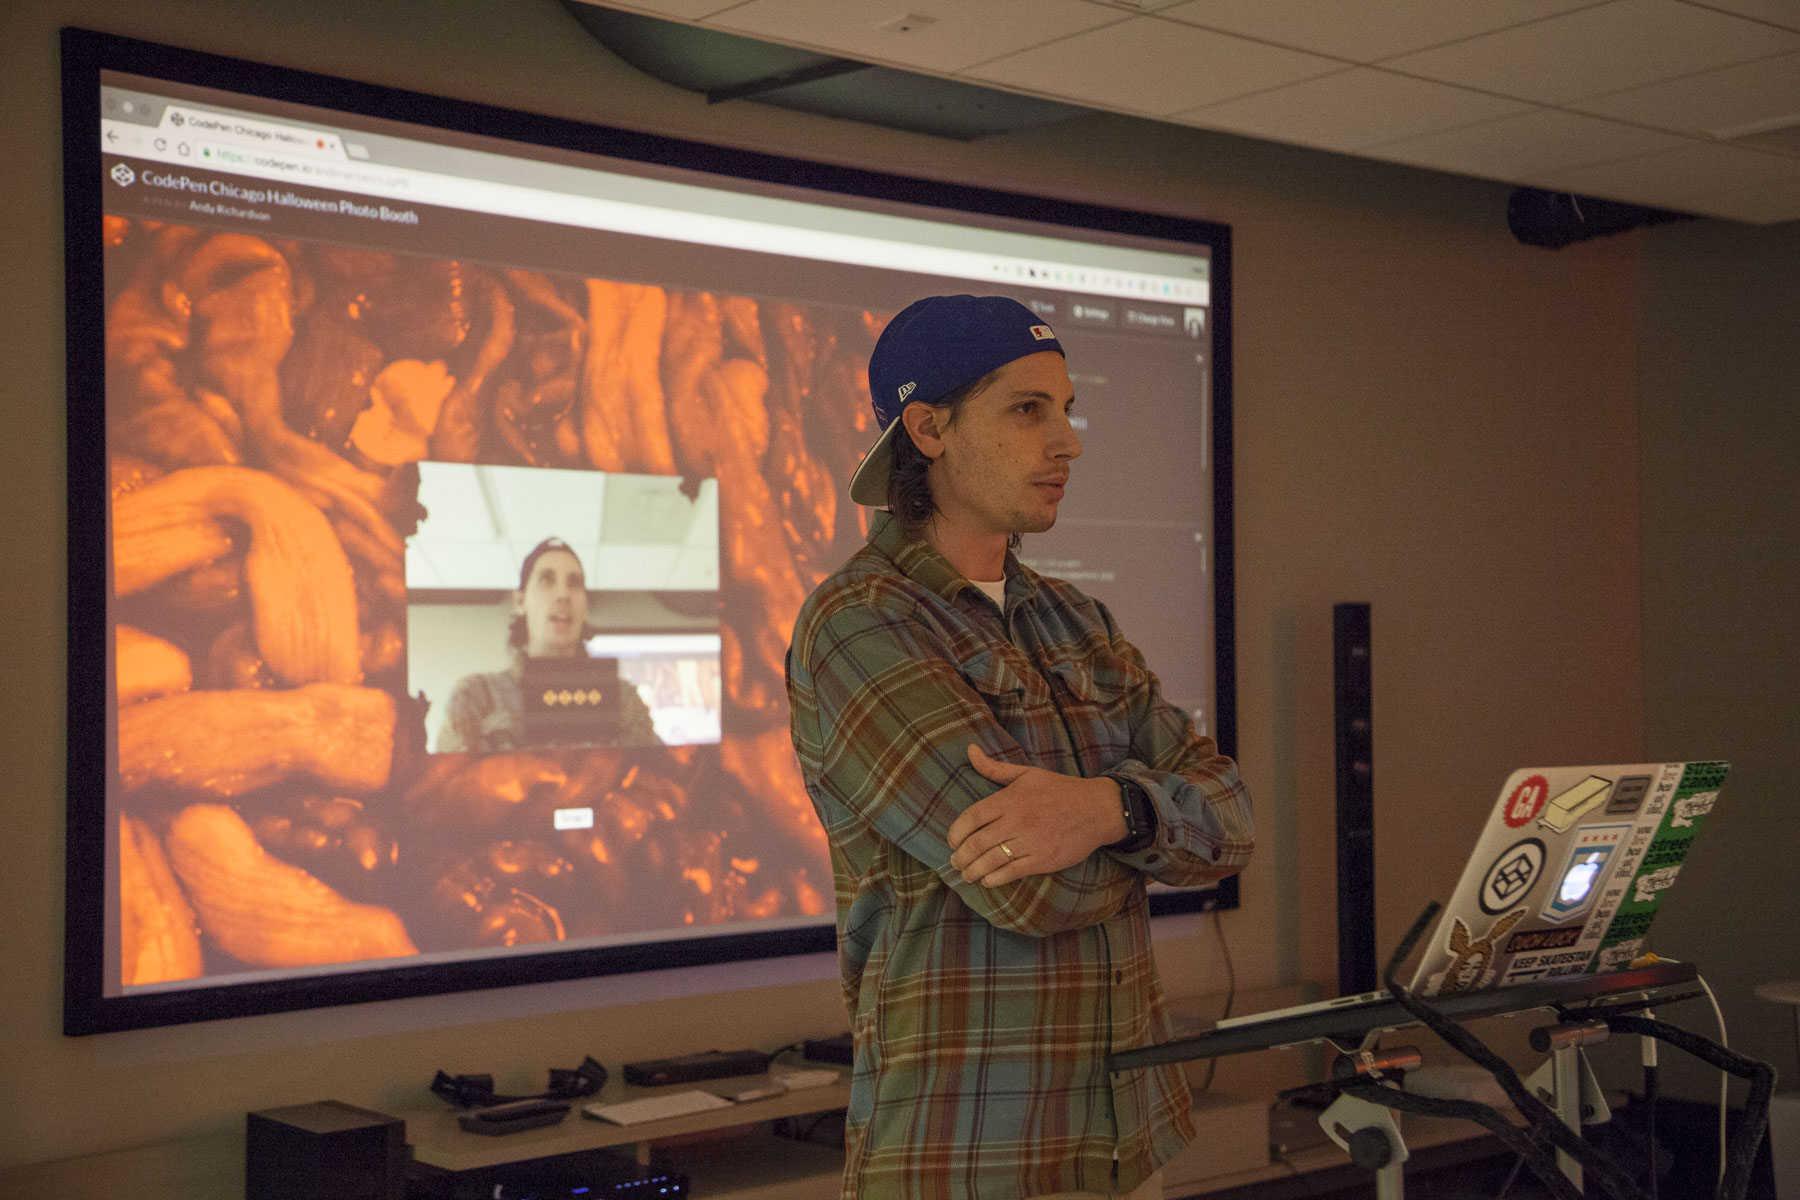 Andy Richardson presenting at CodePen Chicago